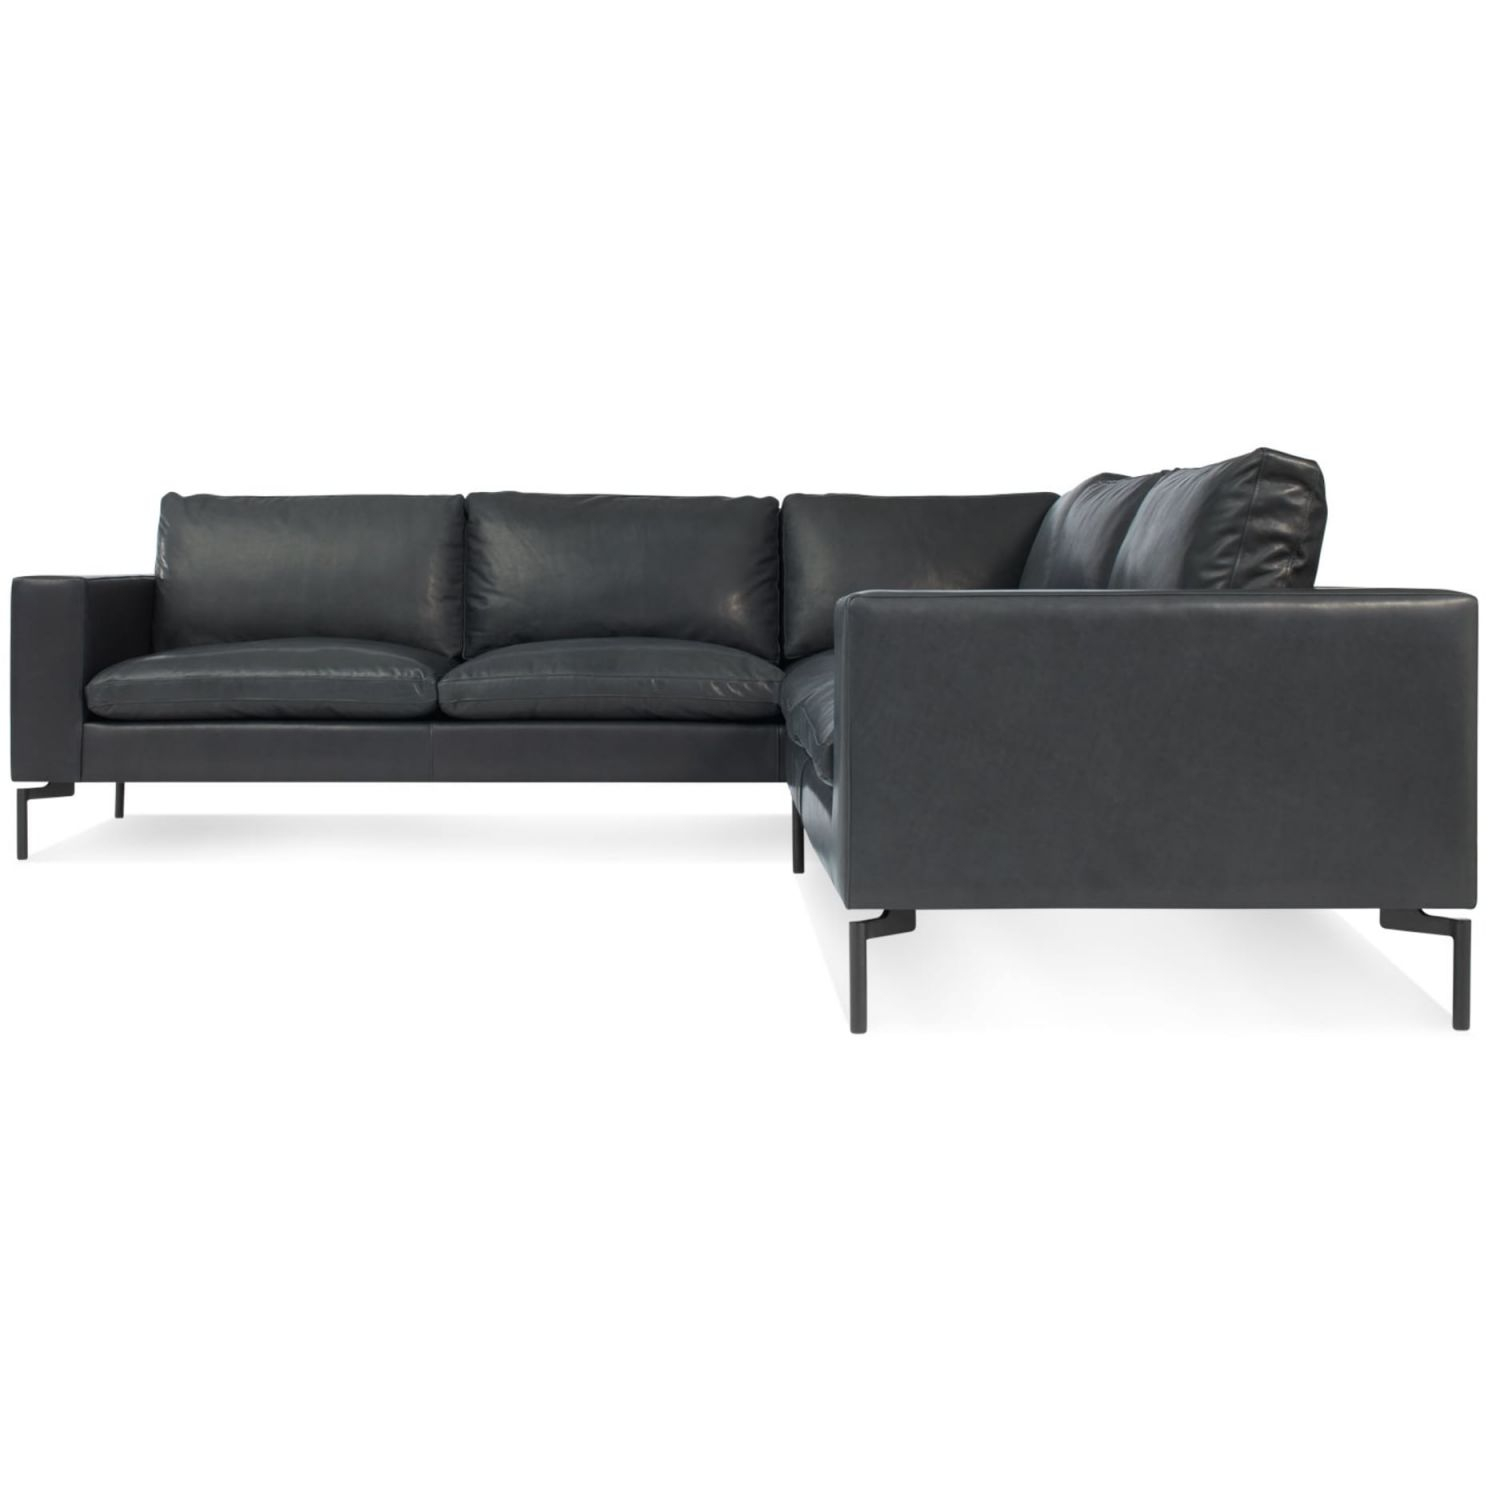 New Standard Leather Sectional Sofa – Small with Leather Sectional Modern